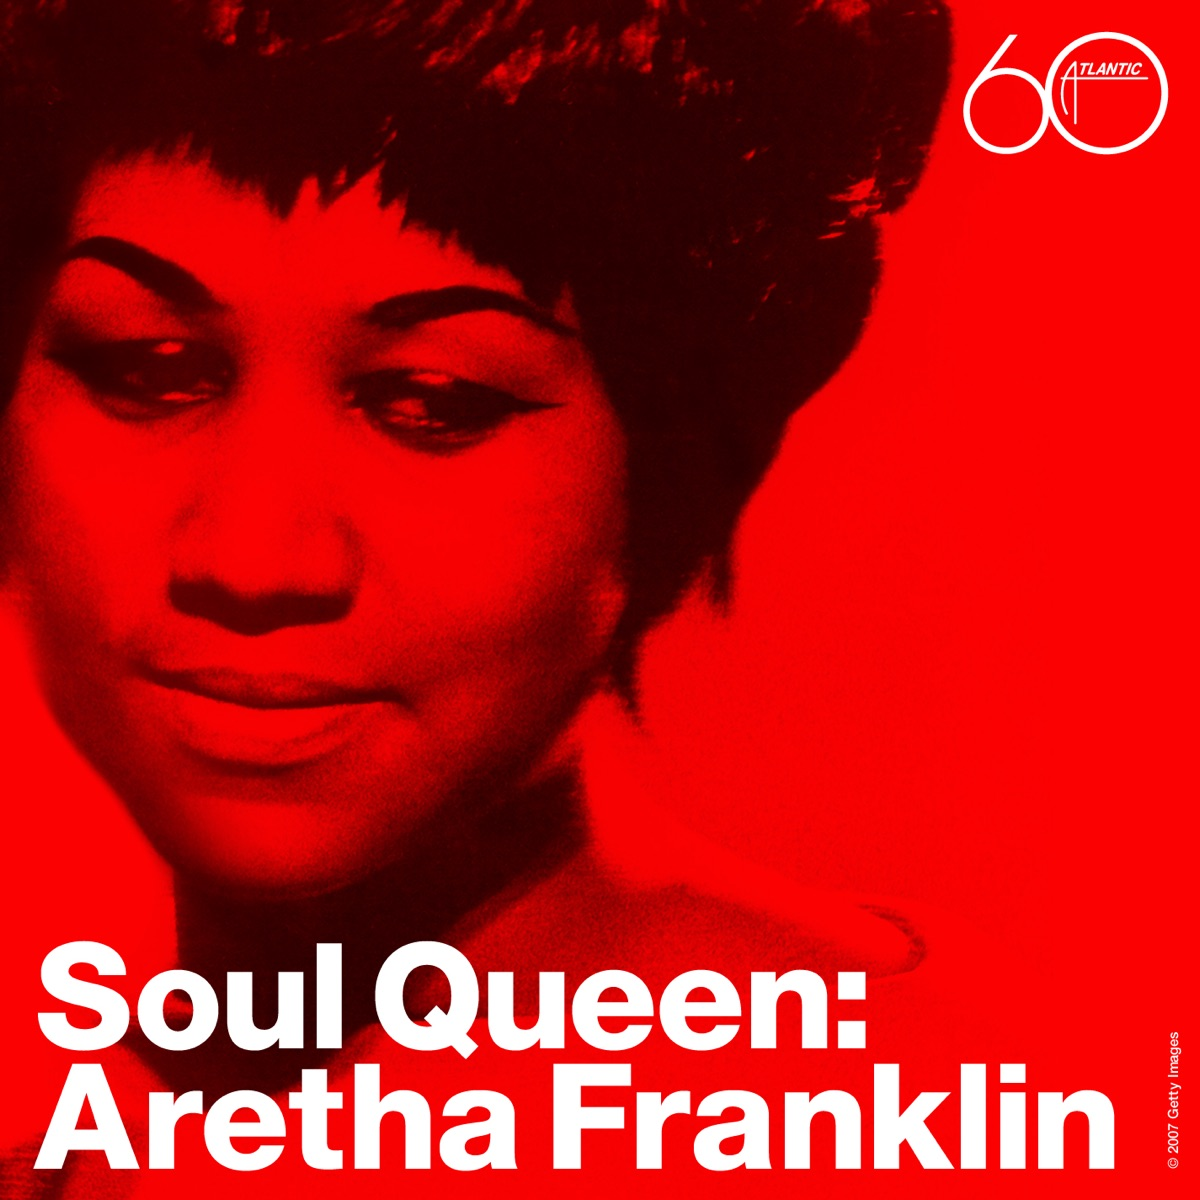 Soul Queen Album Cover by Aretha Franklin